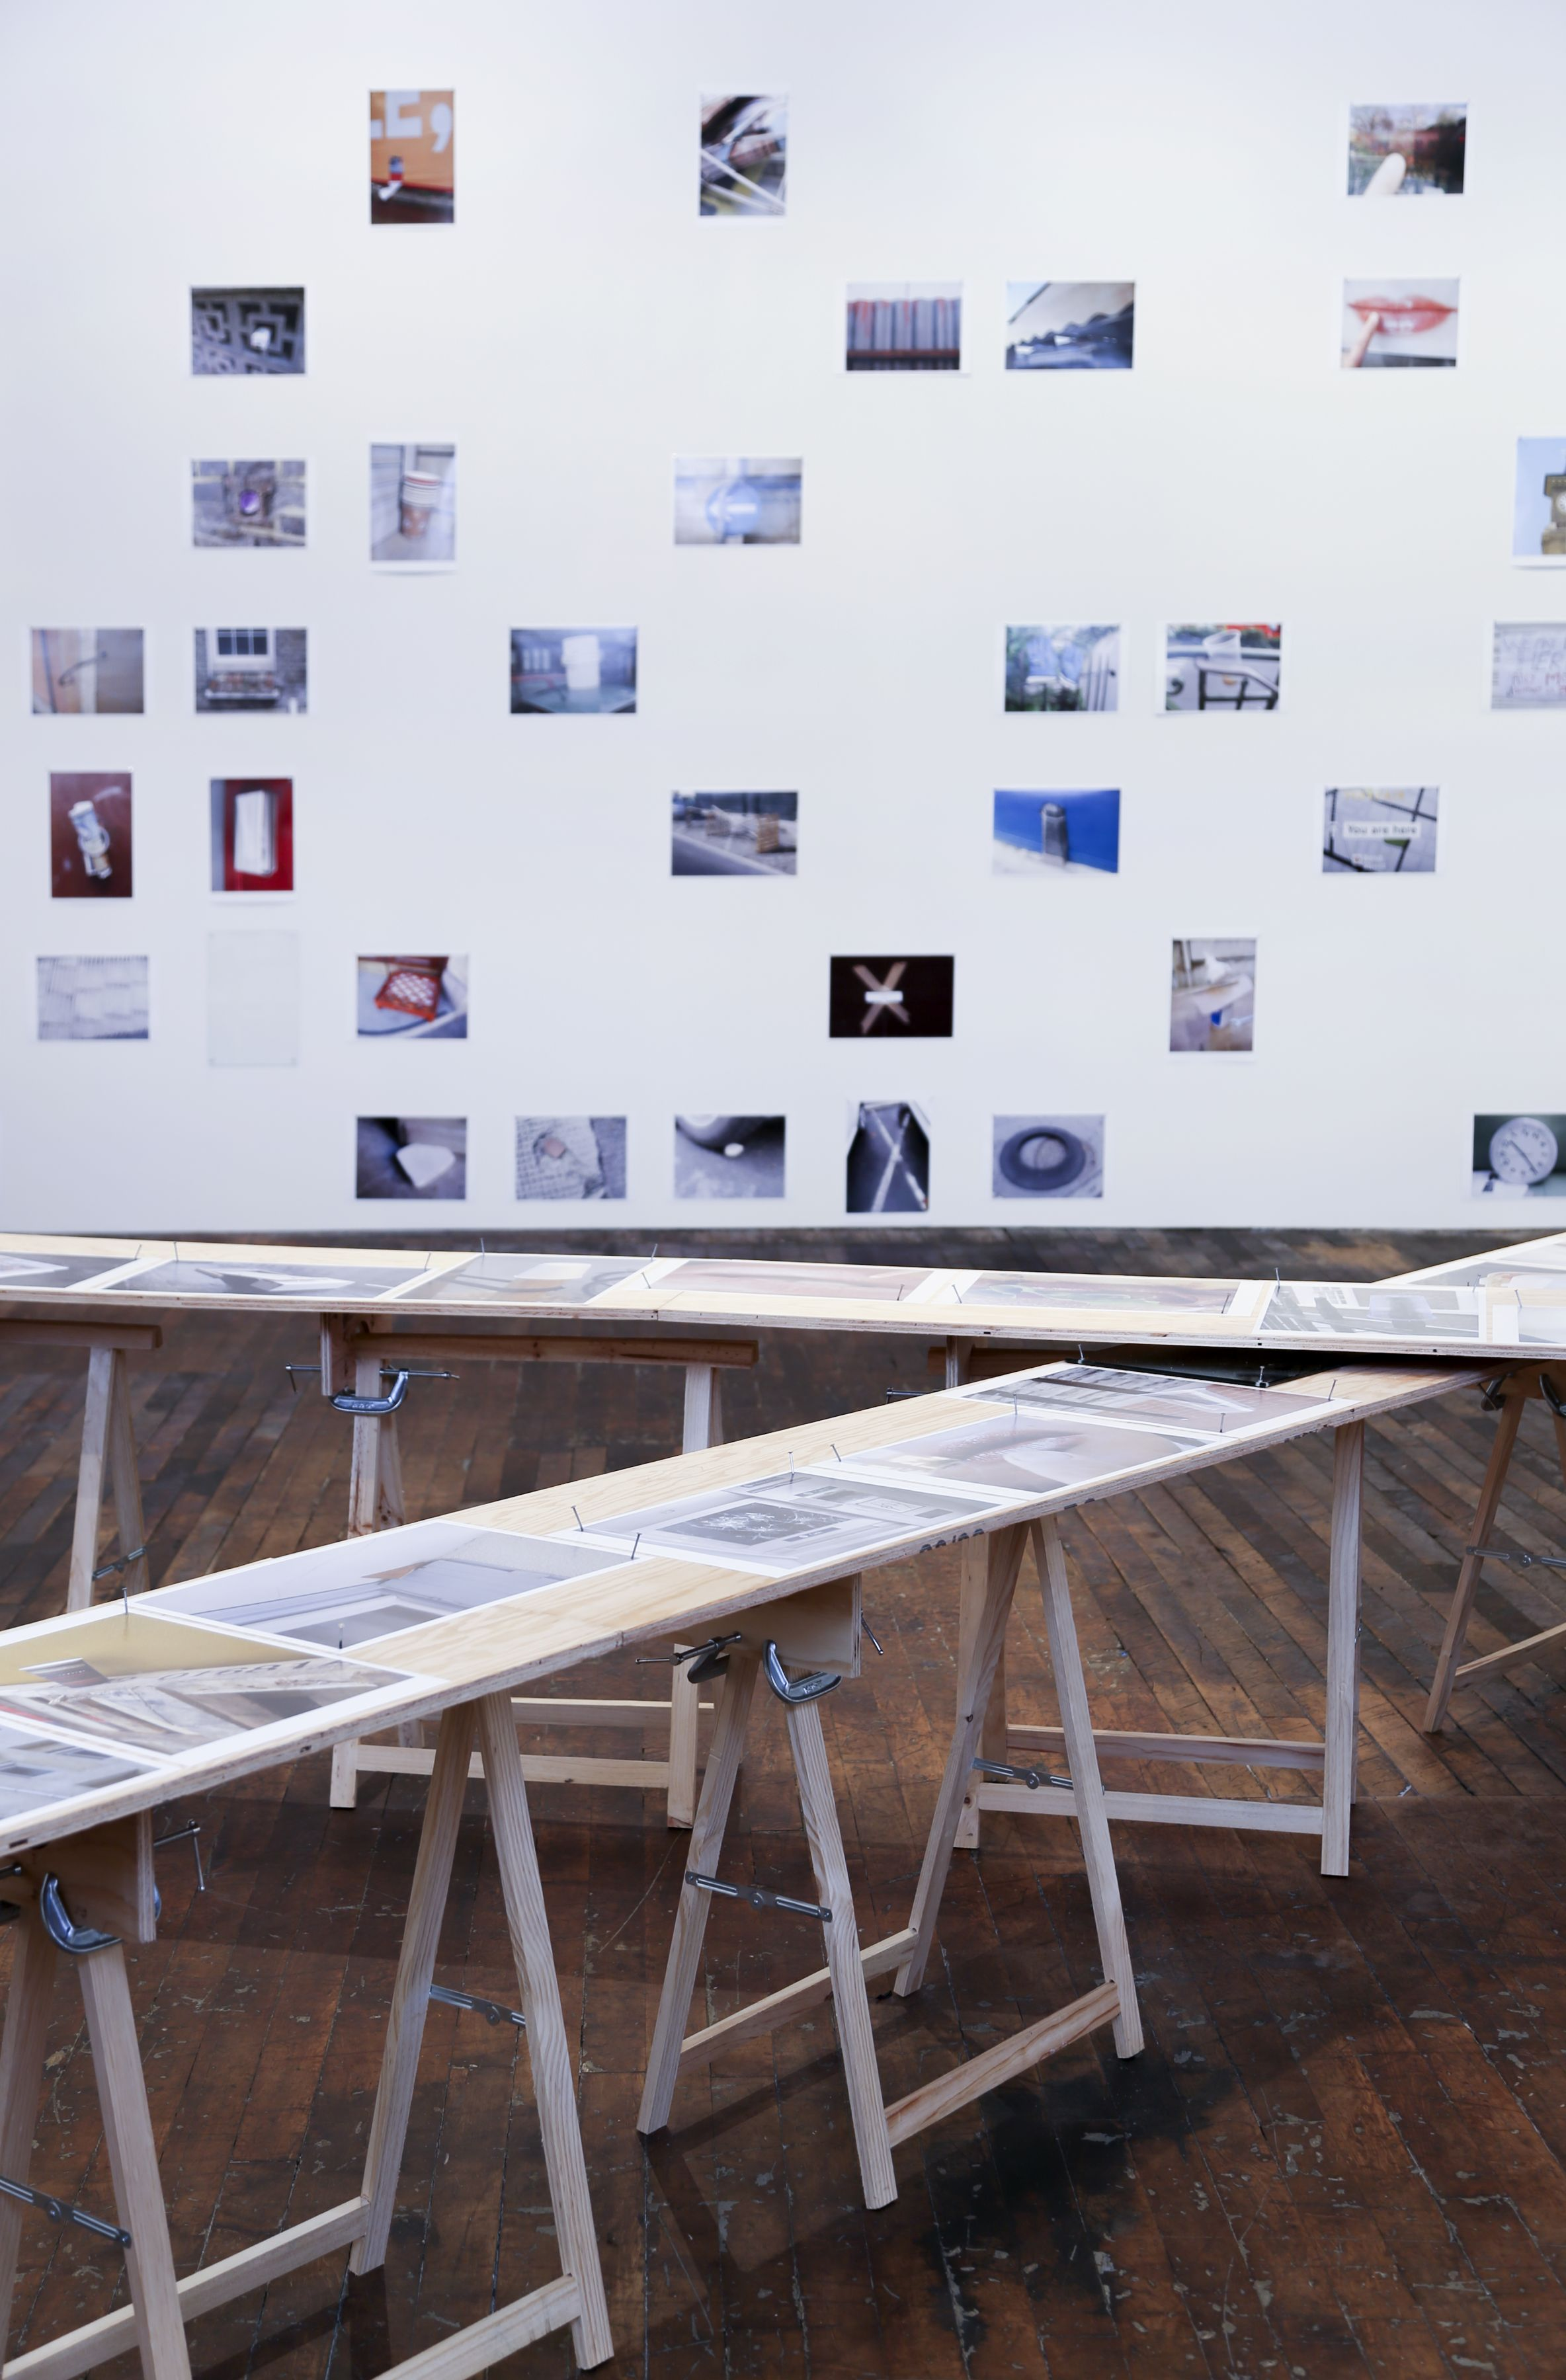 Richard Wentworth: motes to self – installation view 4